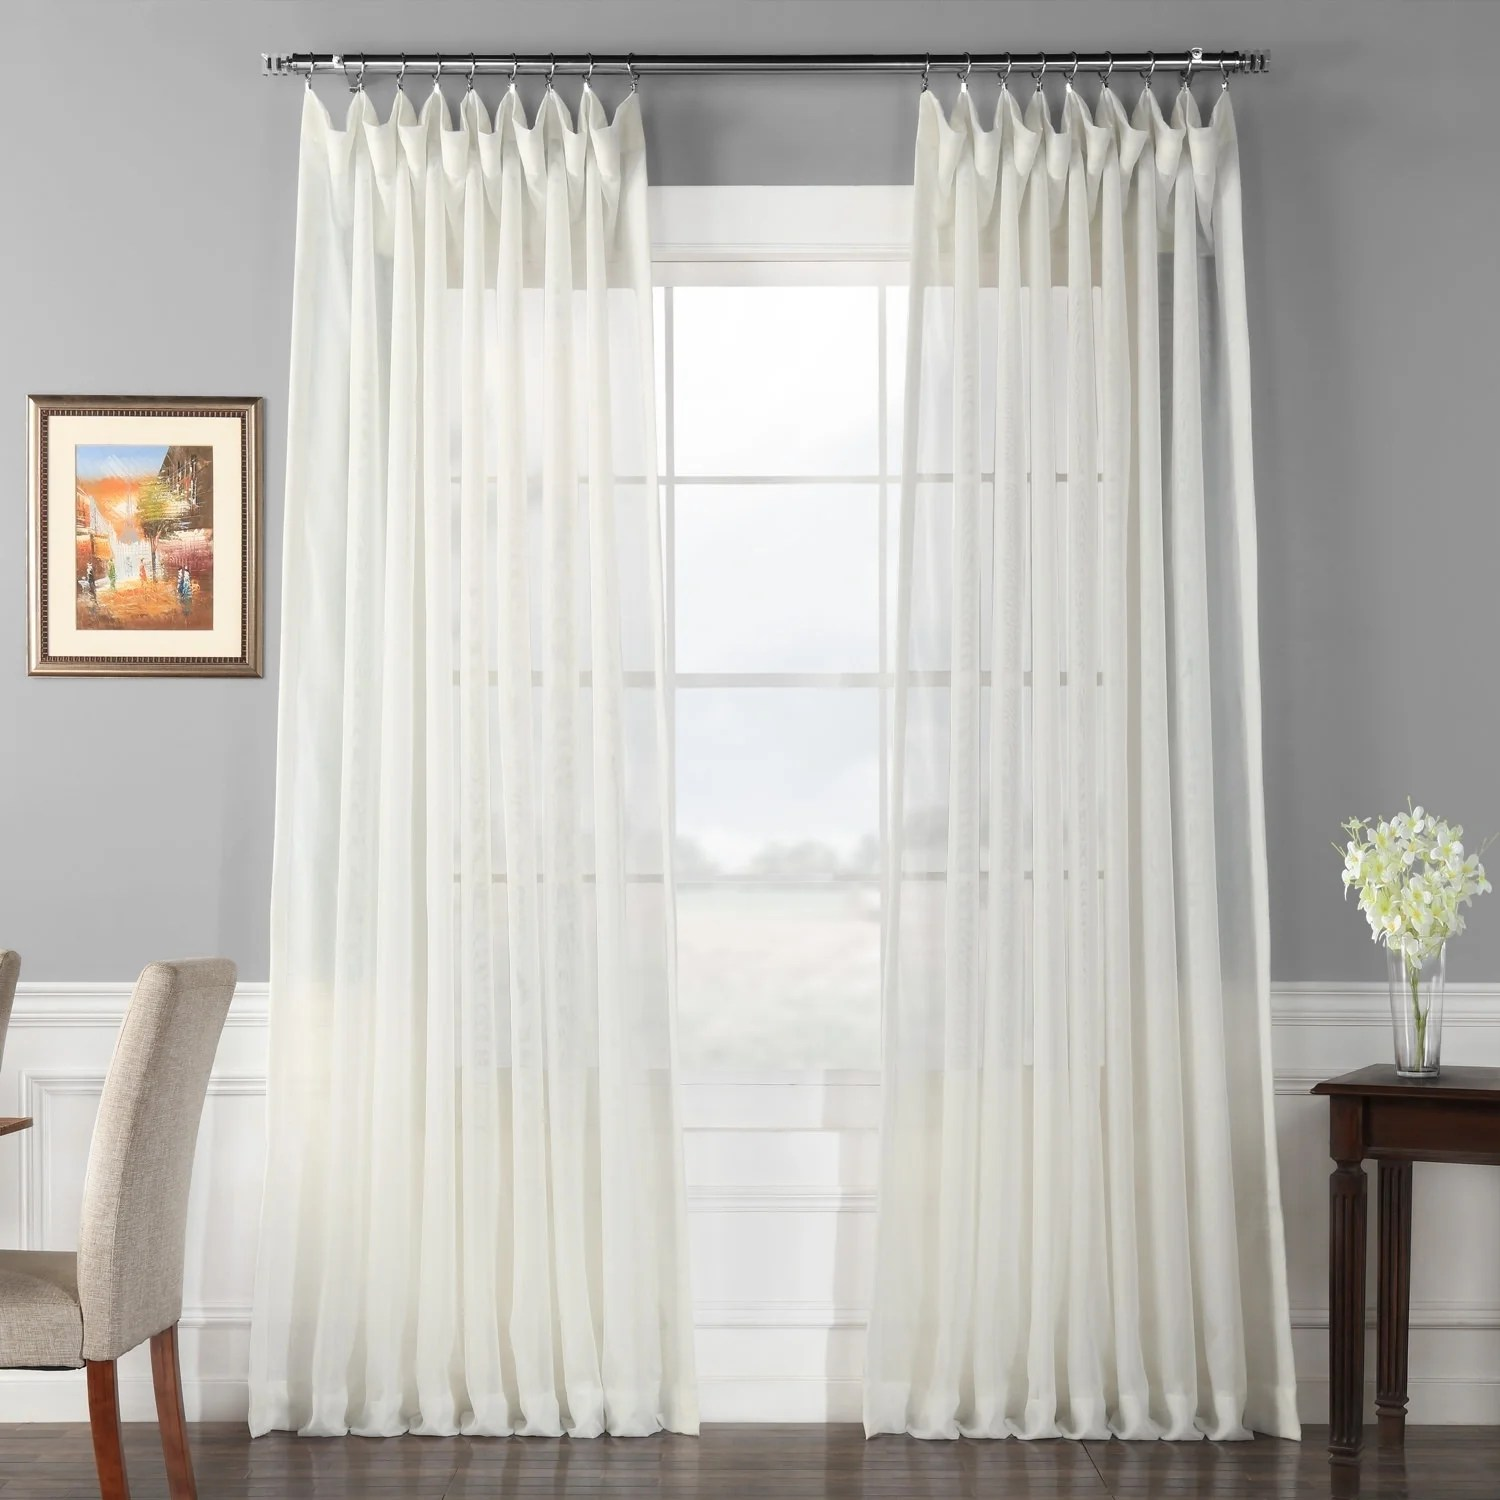 Curtain For Double Window Exclusive Fabrics Signature Extrawide Double Layer Sheer Curtain Panel